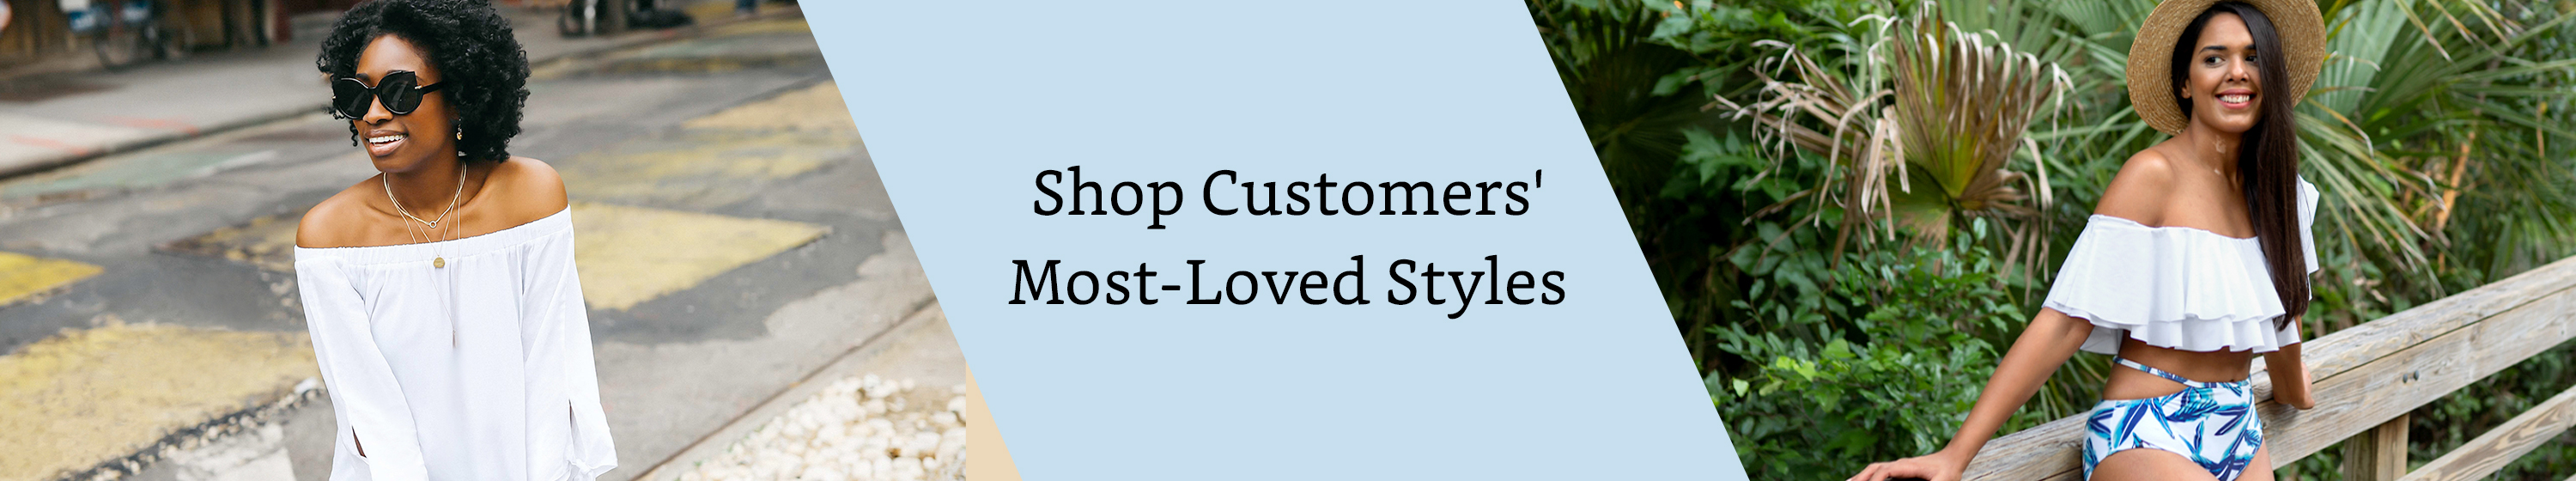 516ef38e5 Shop Customers' Most-Loved Styles